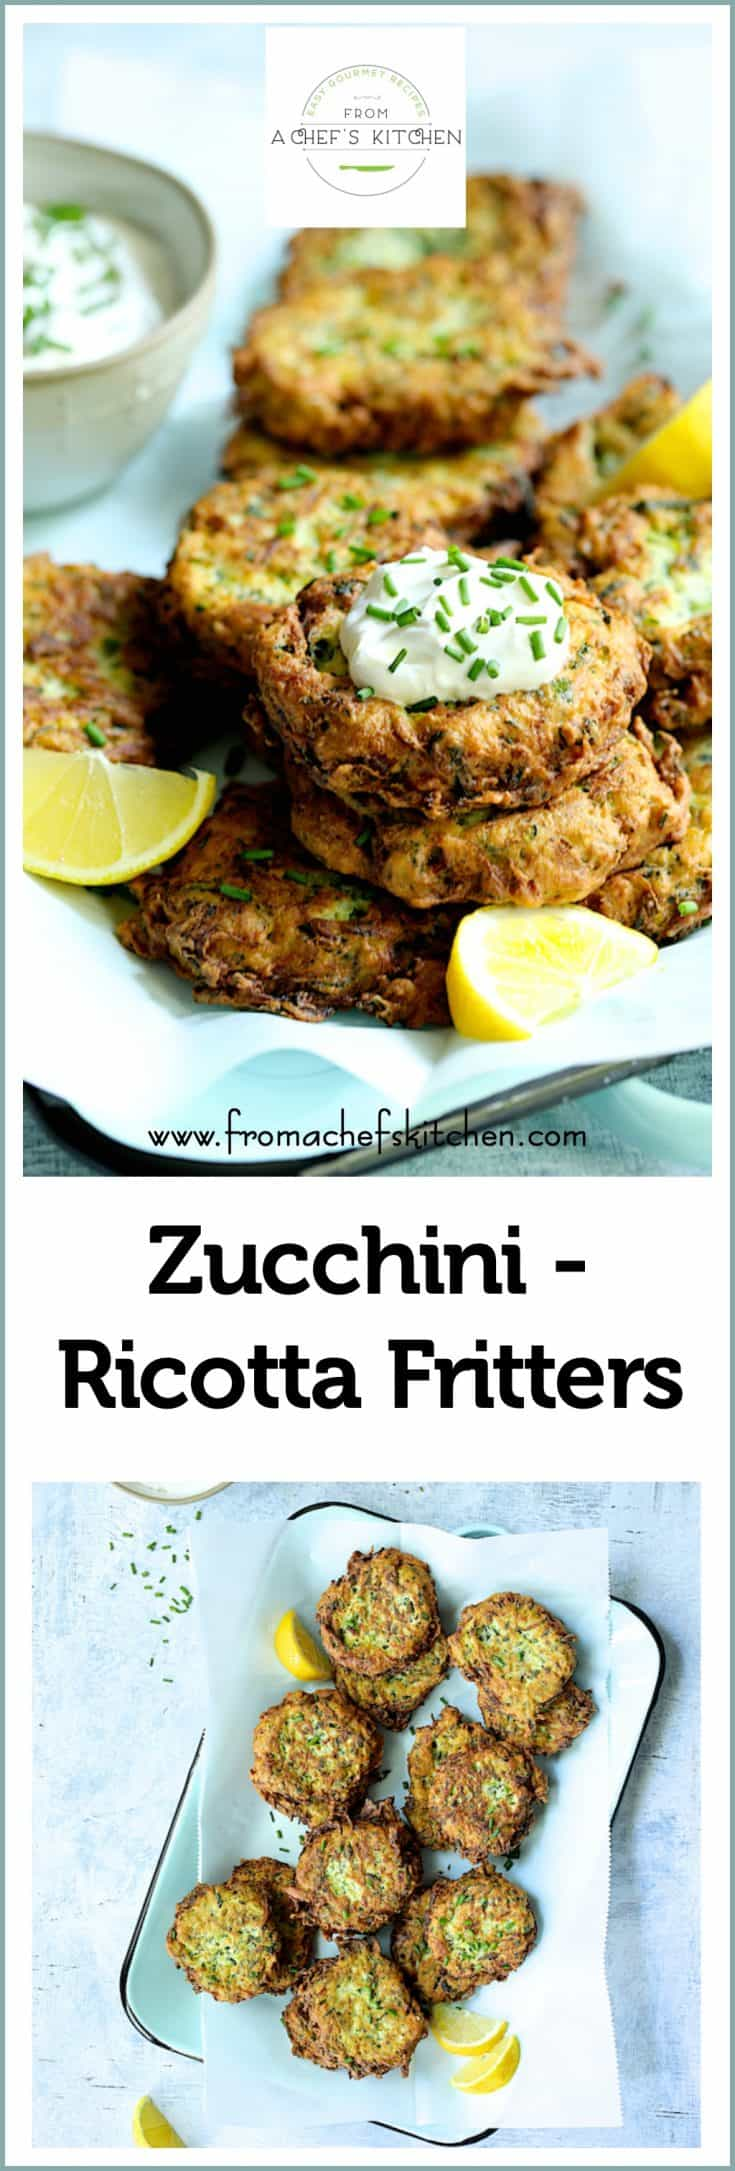 Zucchini Ricotta Fritters are a delicious way to use zucchini and make a great appetizer, snack or vegetarian entree. They're super-crispy on the outside and creamy and luscious on the inside! #zucchini #zucchinirecipes #zucchinifritters #vegetable #vegetableside dish #side dish #vegetarian